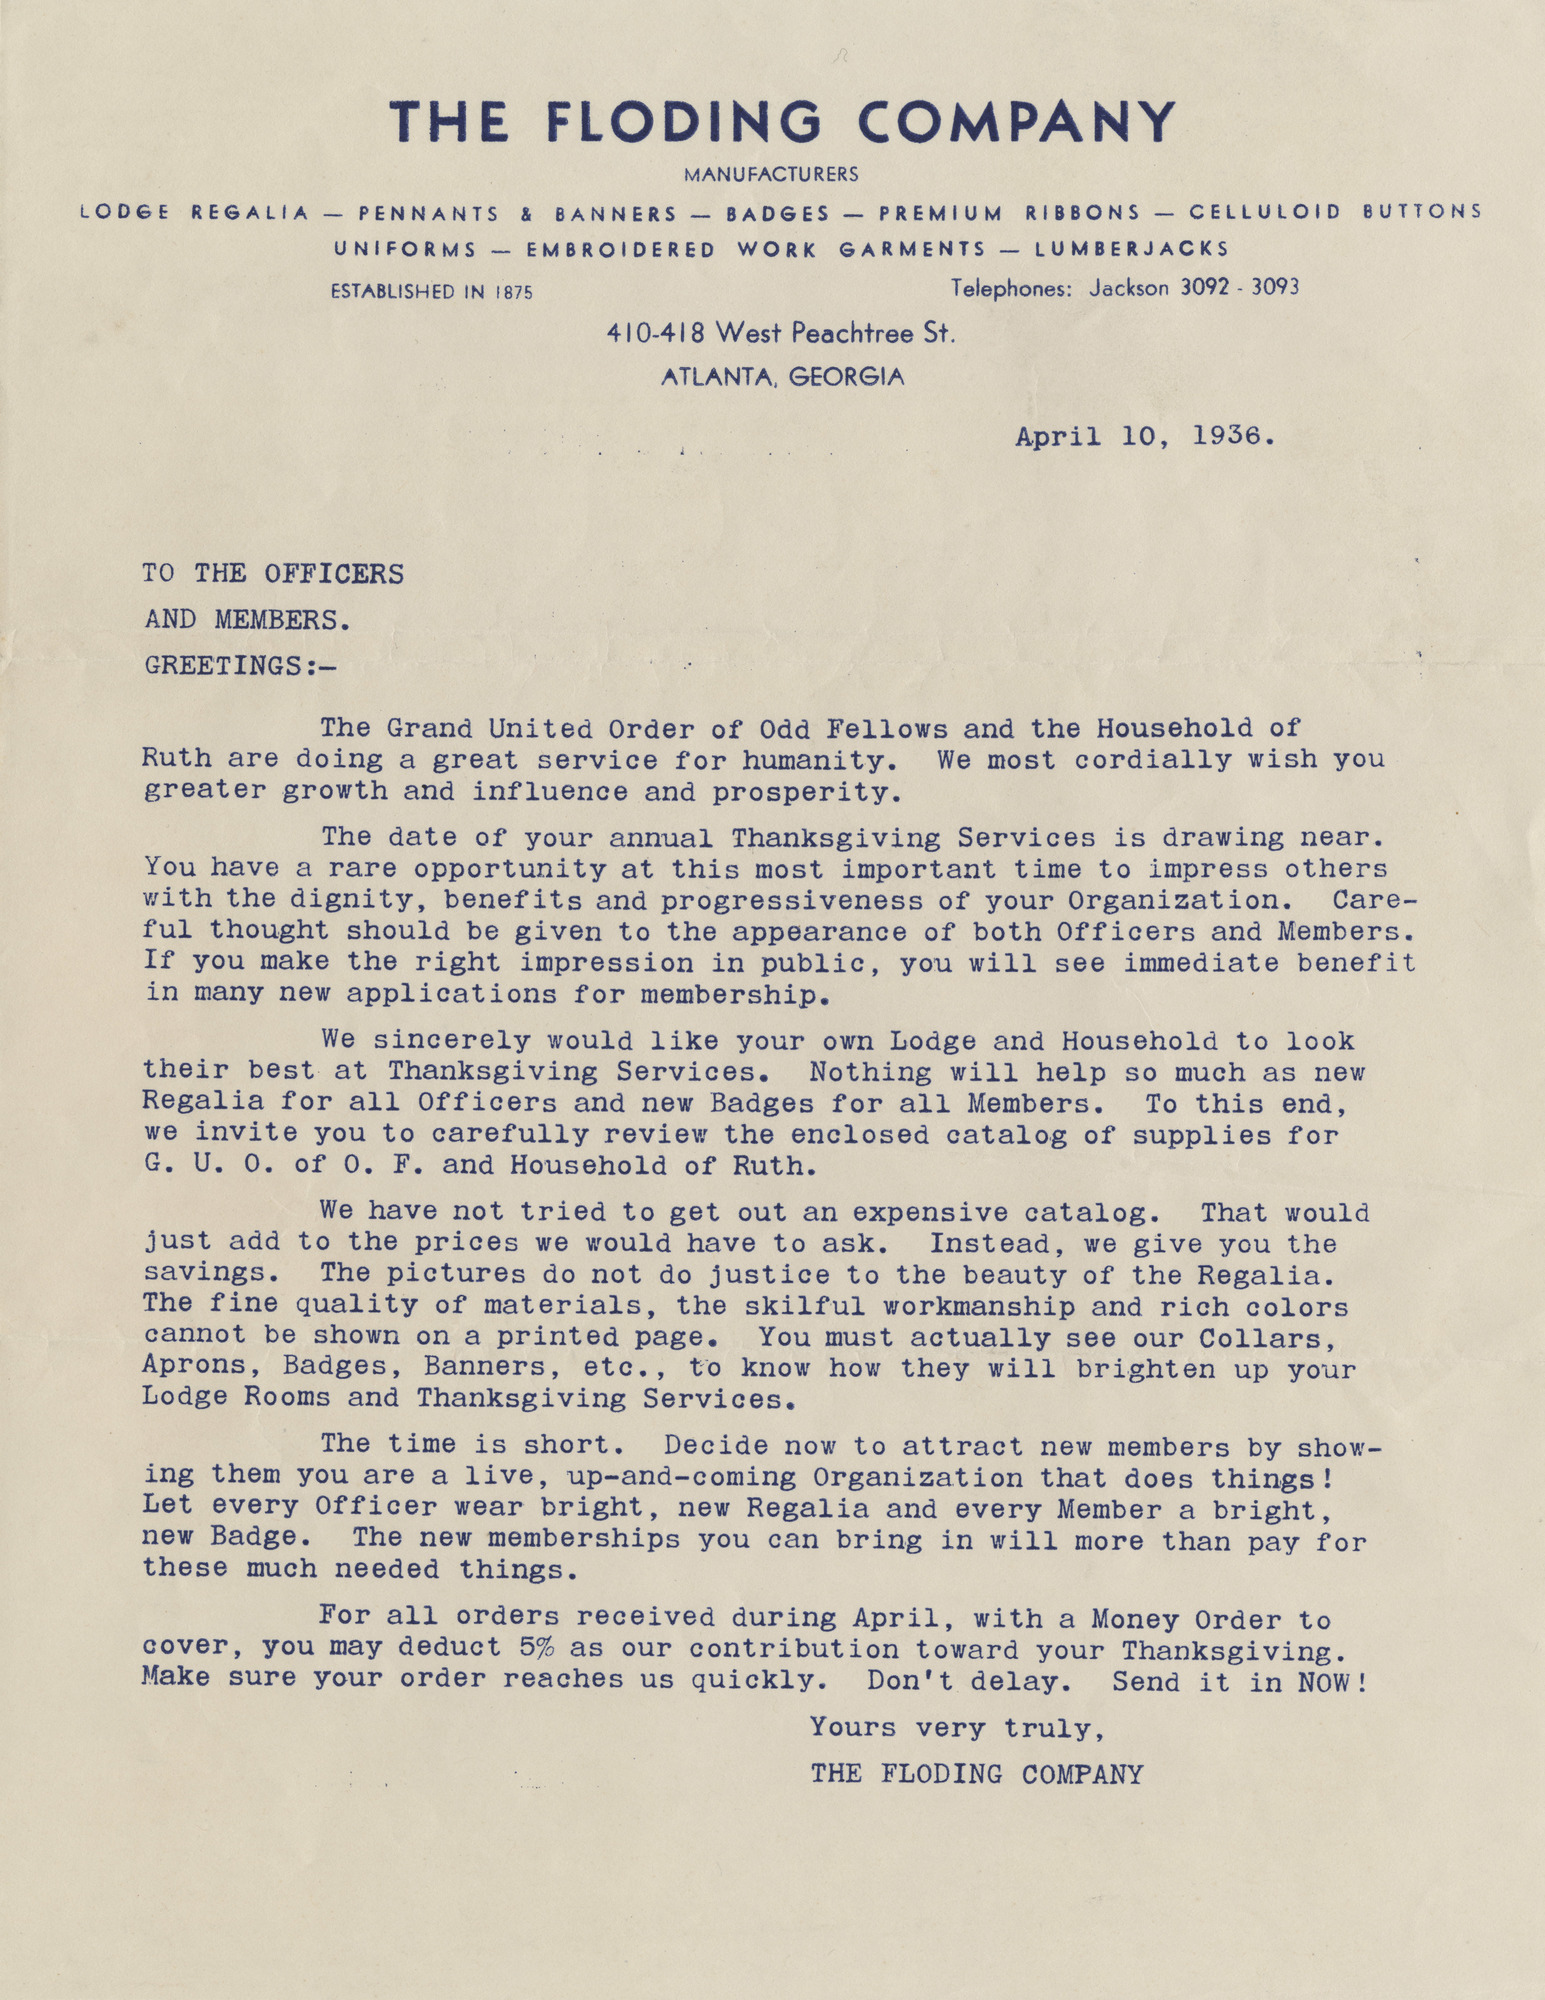 Ms1988-009_OddFellows_B1F57_Letter_1936_0410.jpg